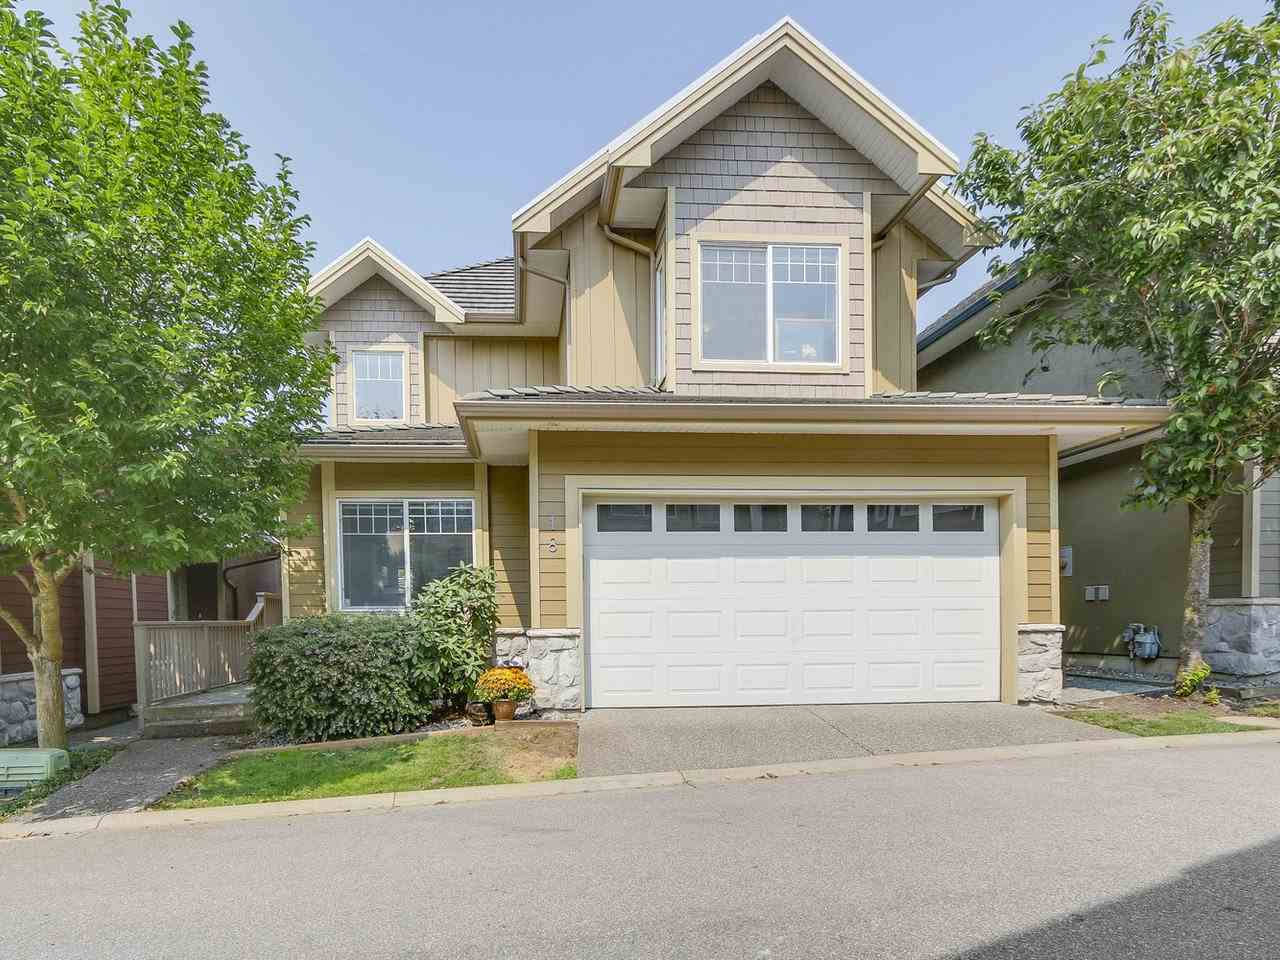 Detached at 18 3363 ROSEMARY HEIGHTS CRESCENT, Unit 18, South Surrey White Rock, British Columbia. Image 1